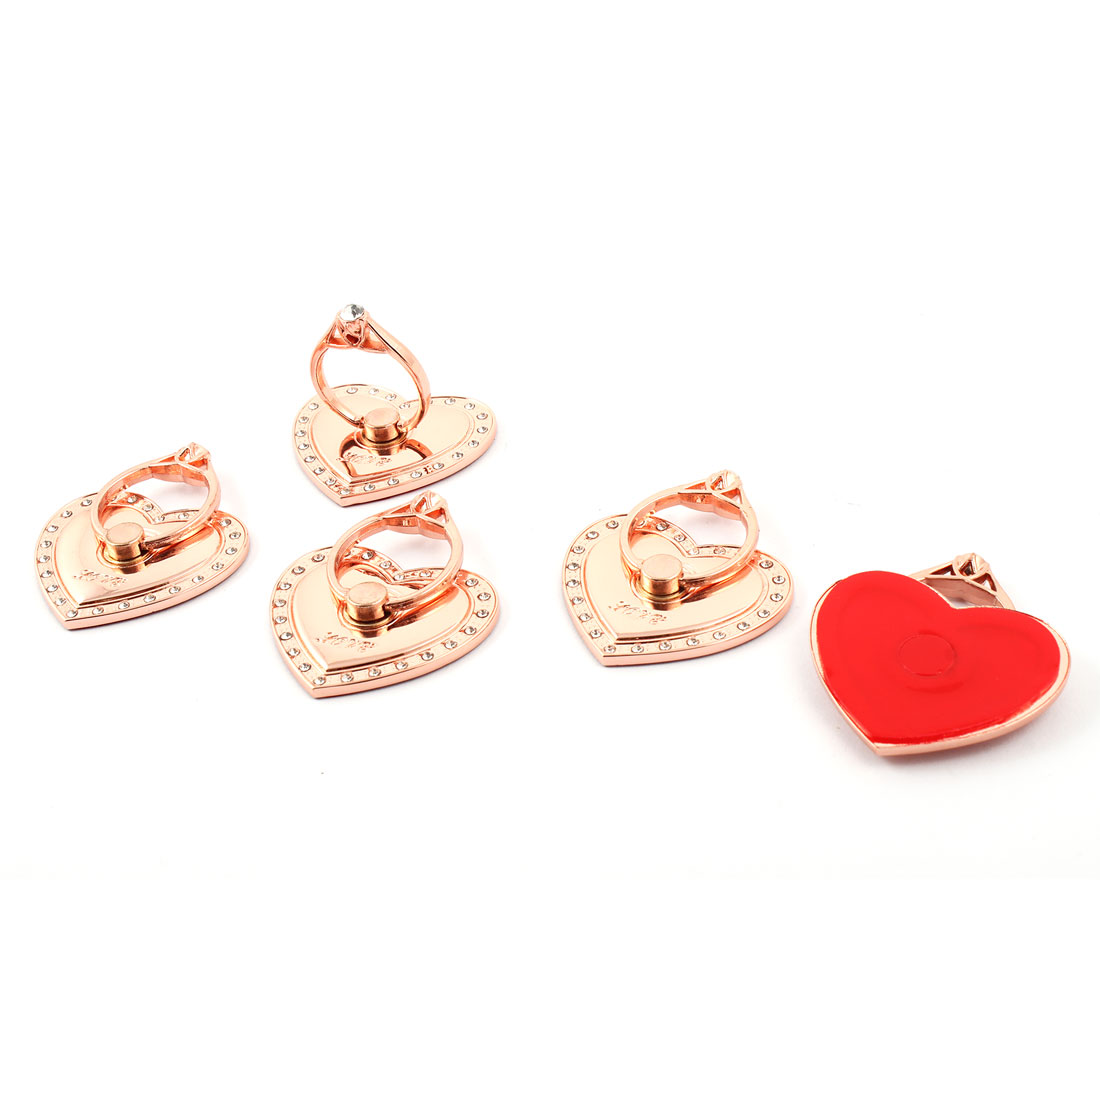 Mobilephone Metal Rhinestone Inlaid Finger Grip Ring Heart Shaped Holder Bracket Rose Gold Tone 5pcs